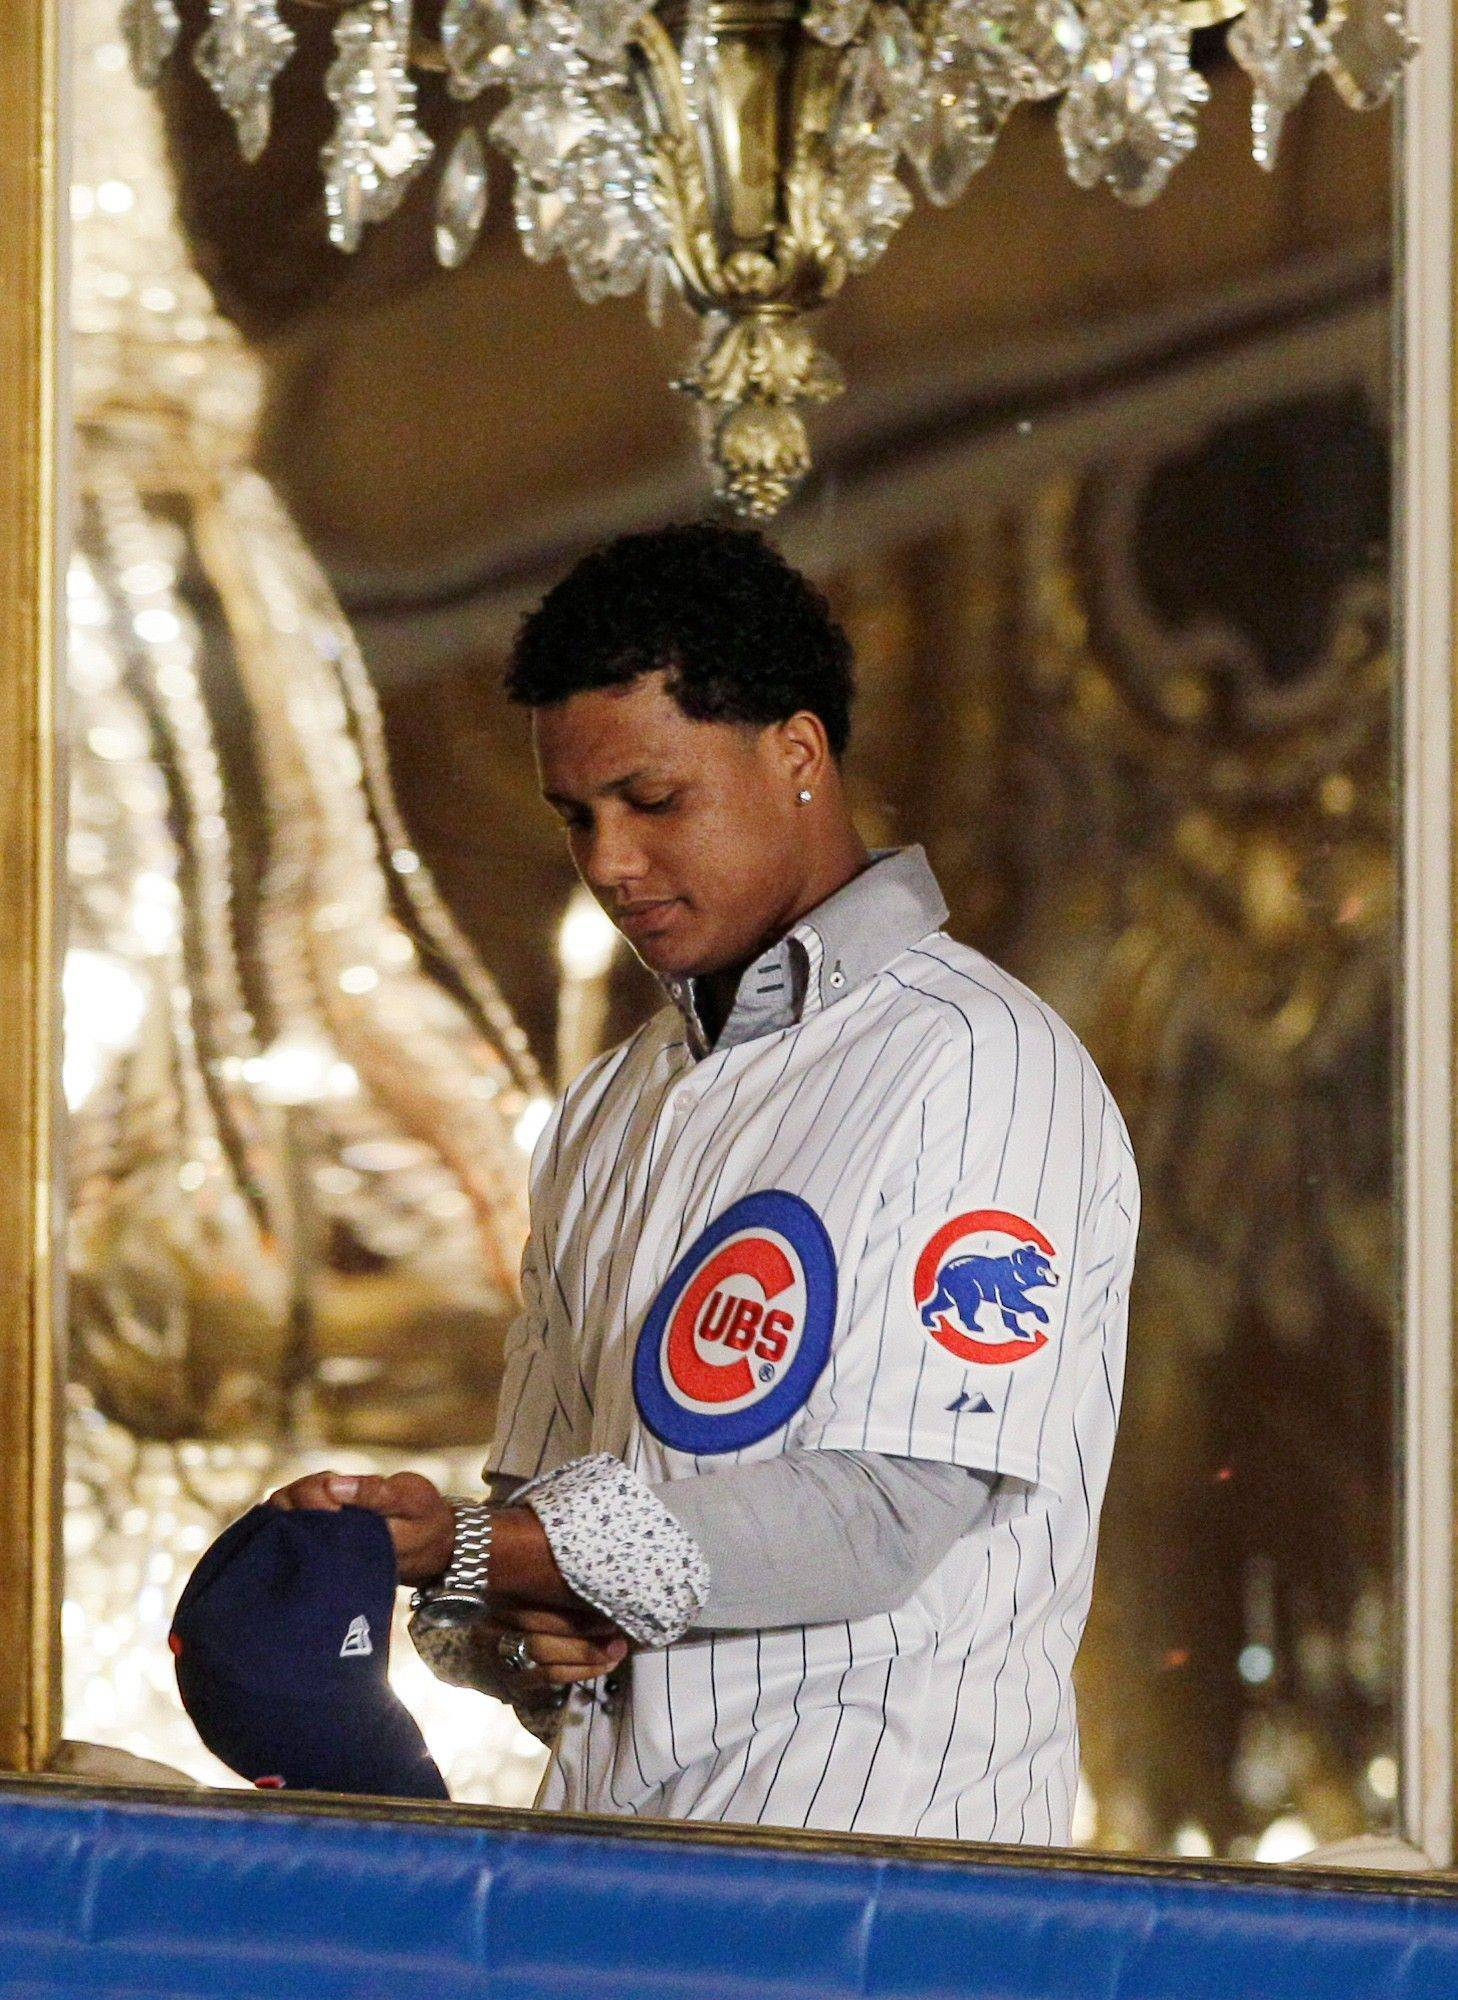 Chicago Cubs infielder Starlin Castro attends the 27th Annual Chicago Cubs Convention in Chicago on Friday, Jan. 13, 2012.